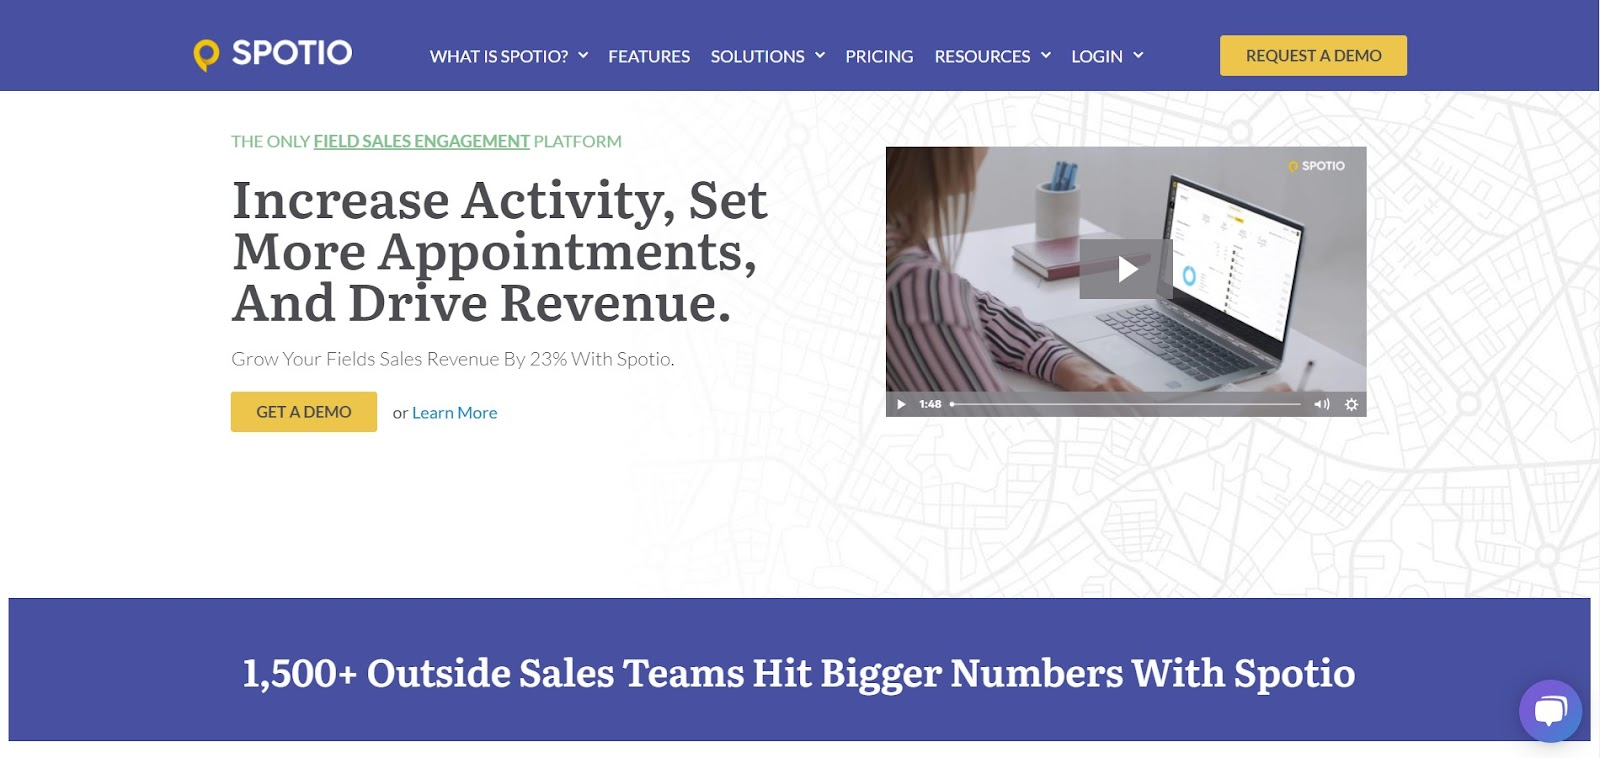 SPOTIO tool for sales team